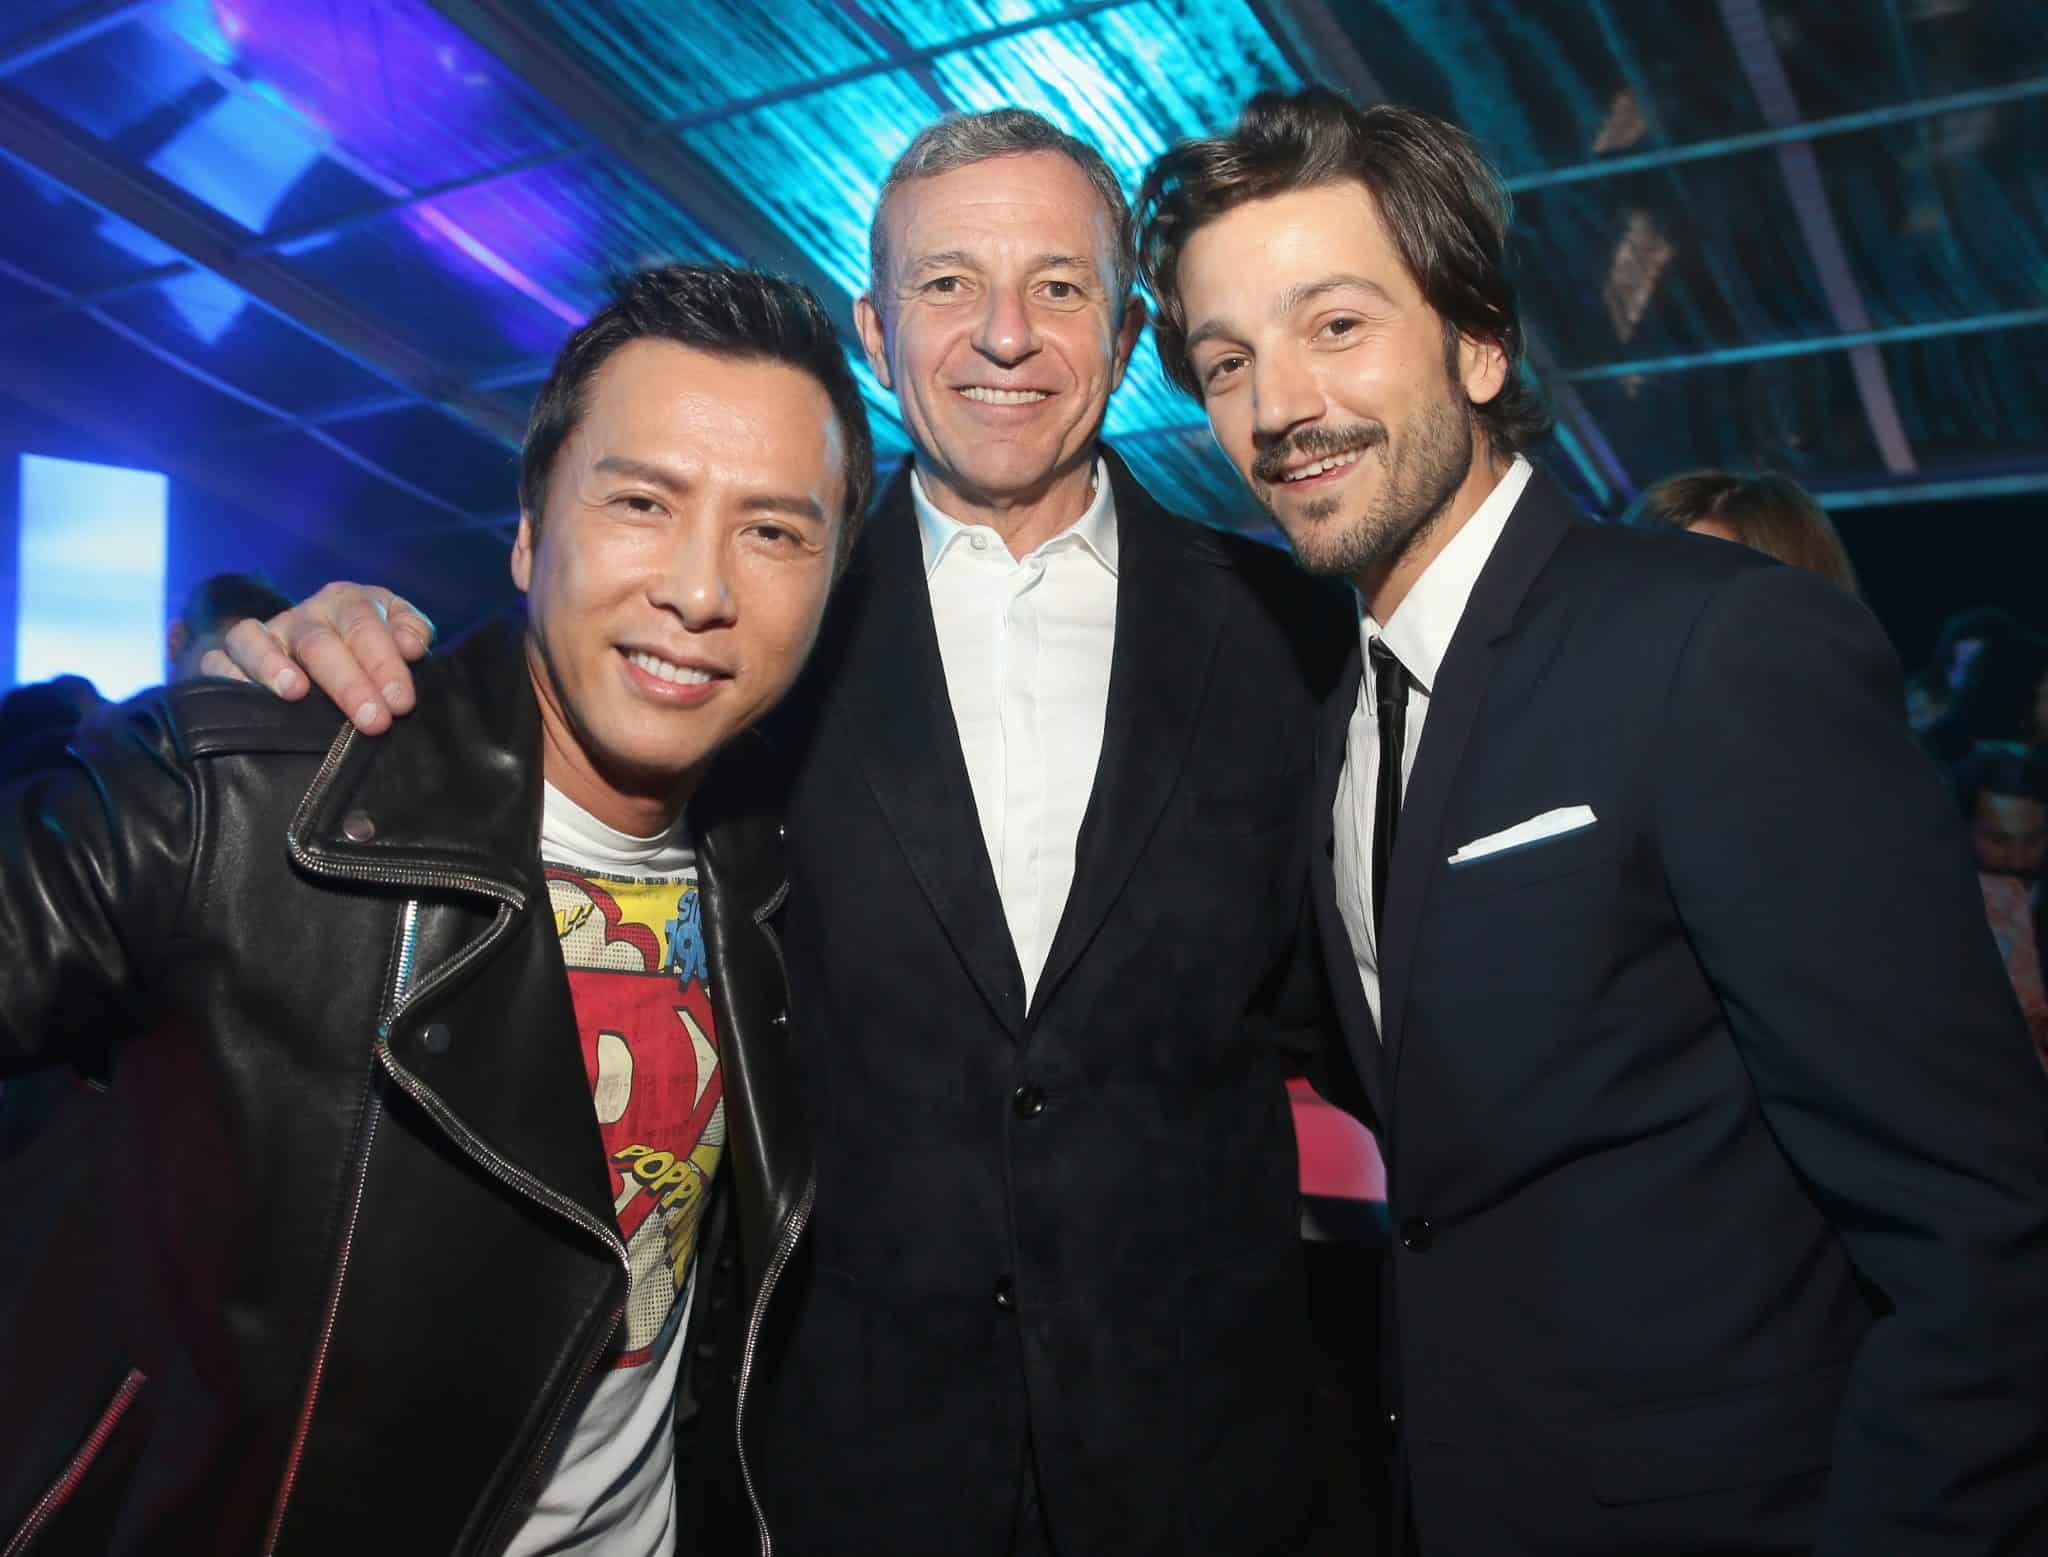 "HOLLYWOOD, CA - DECEMBER 10: (L-R) Actor Donnie Yen, The Walt Disney Company Chairman and CEO Bob Iger and actor Diego Luna attend The World Premiere of Lucasfilm's highly anticipated, first-ever, standalone Star Wars adventure, ""Rogue One: A Star Wars Story"" at the Pantages Theatre on December 10, 2016 in Hollywood, California. (Photo by Jesse Grant/Getty Images for Disney) *** Local Caption *** Donnie Yen; Bob Iger; Diego Luna"